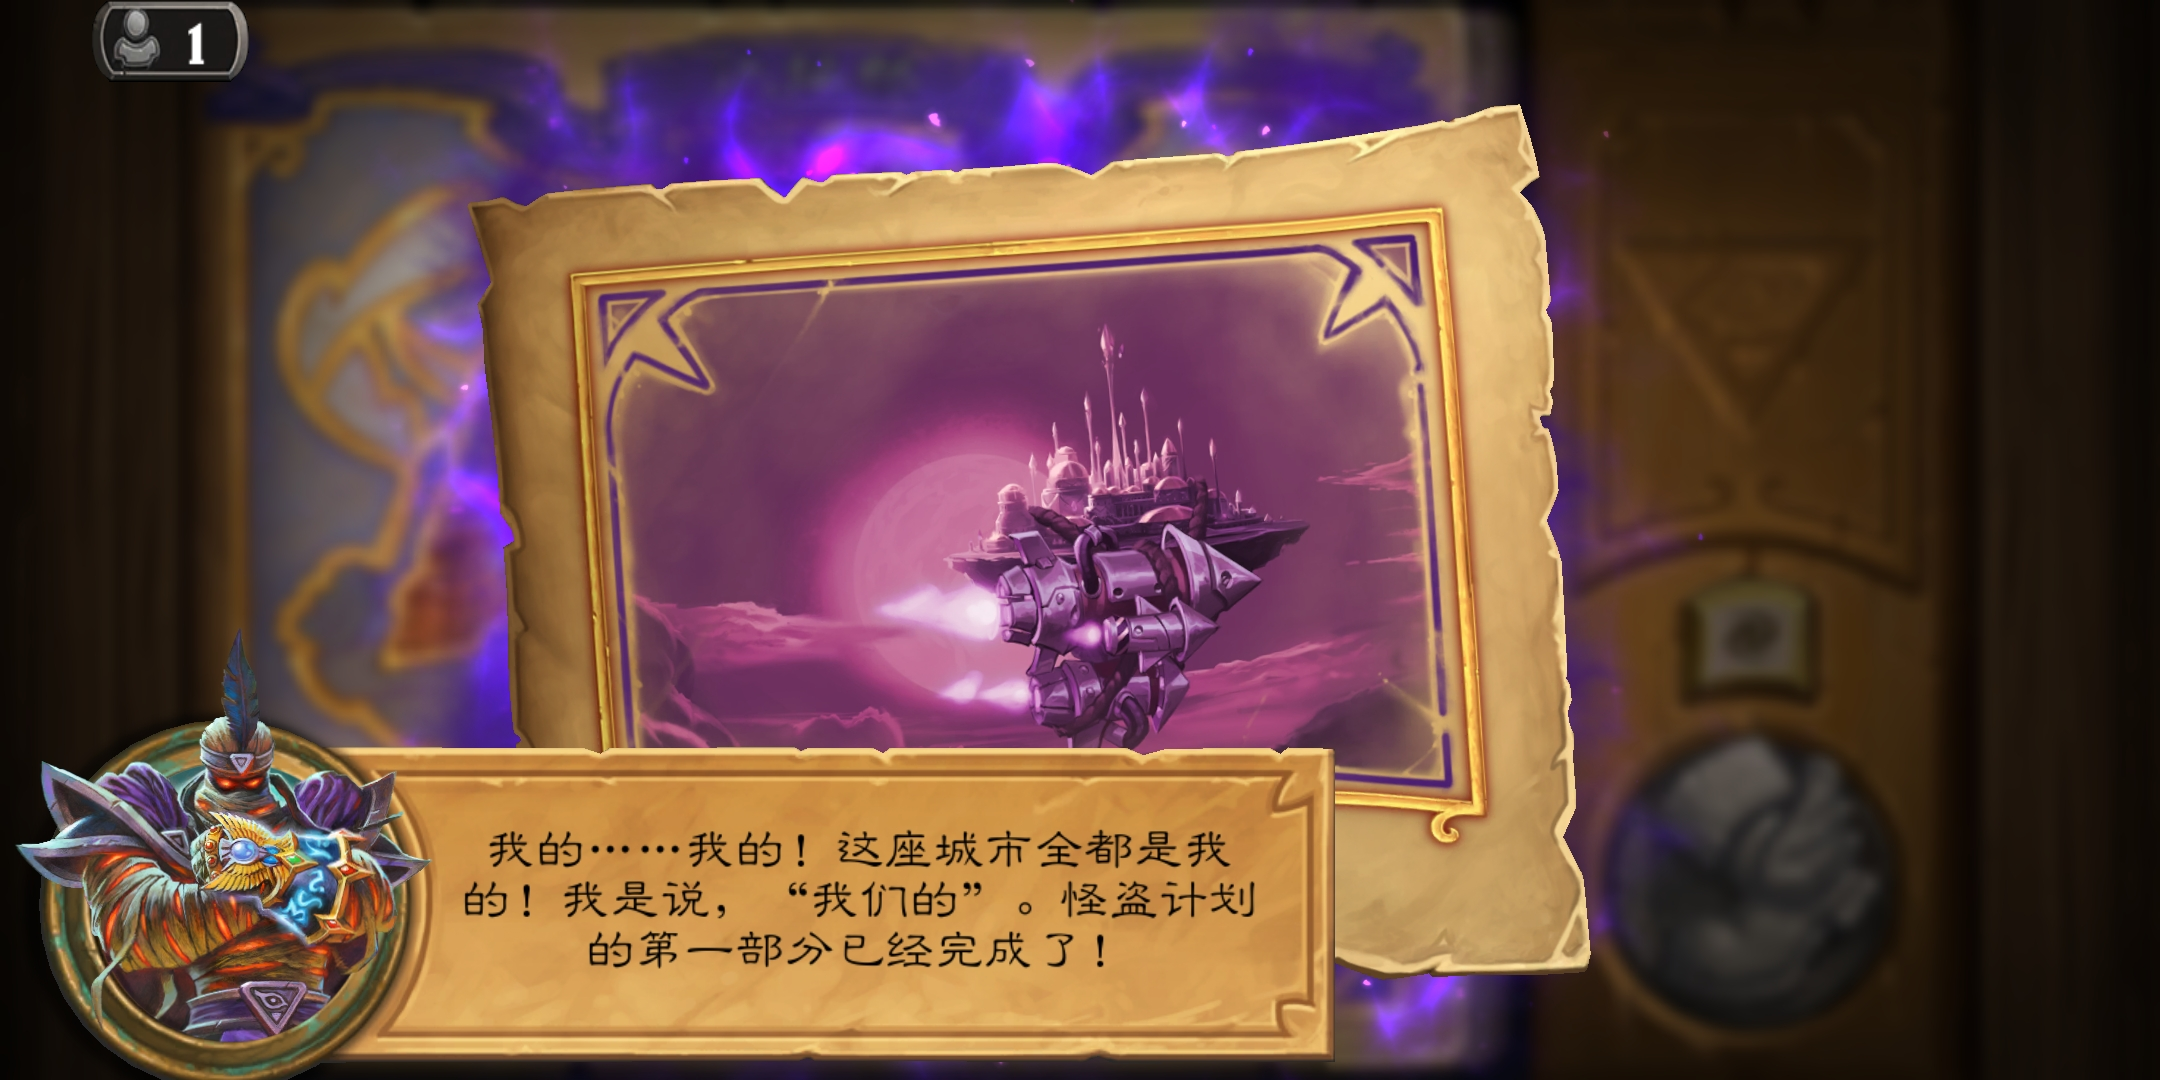 Screenshot_20190609_194121_com.blizzard.wtcg.hearthstone.jpg